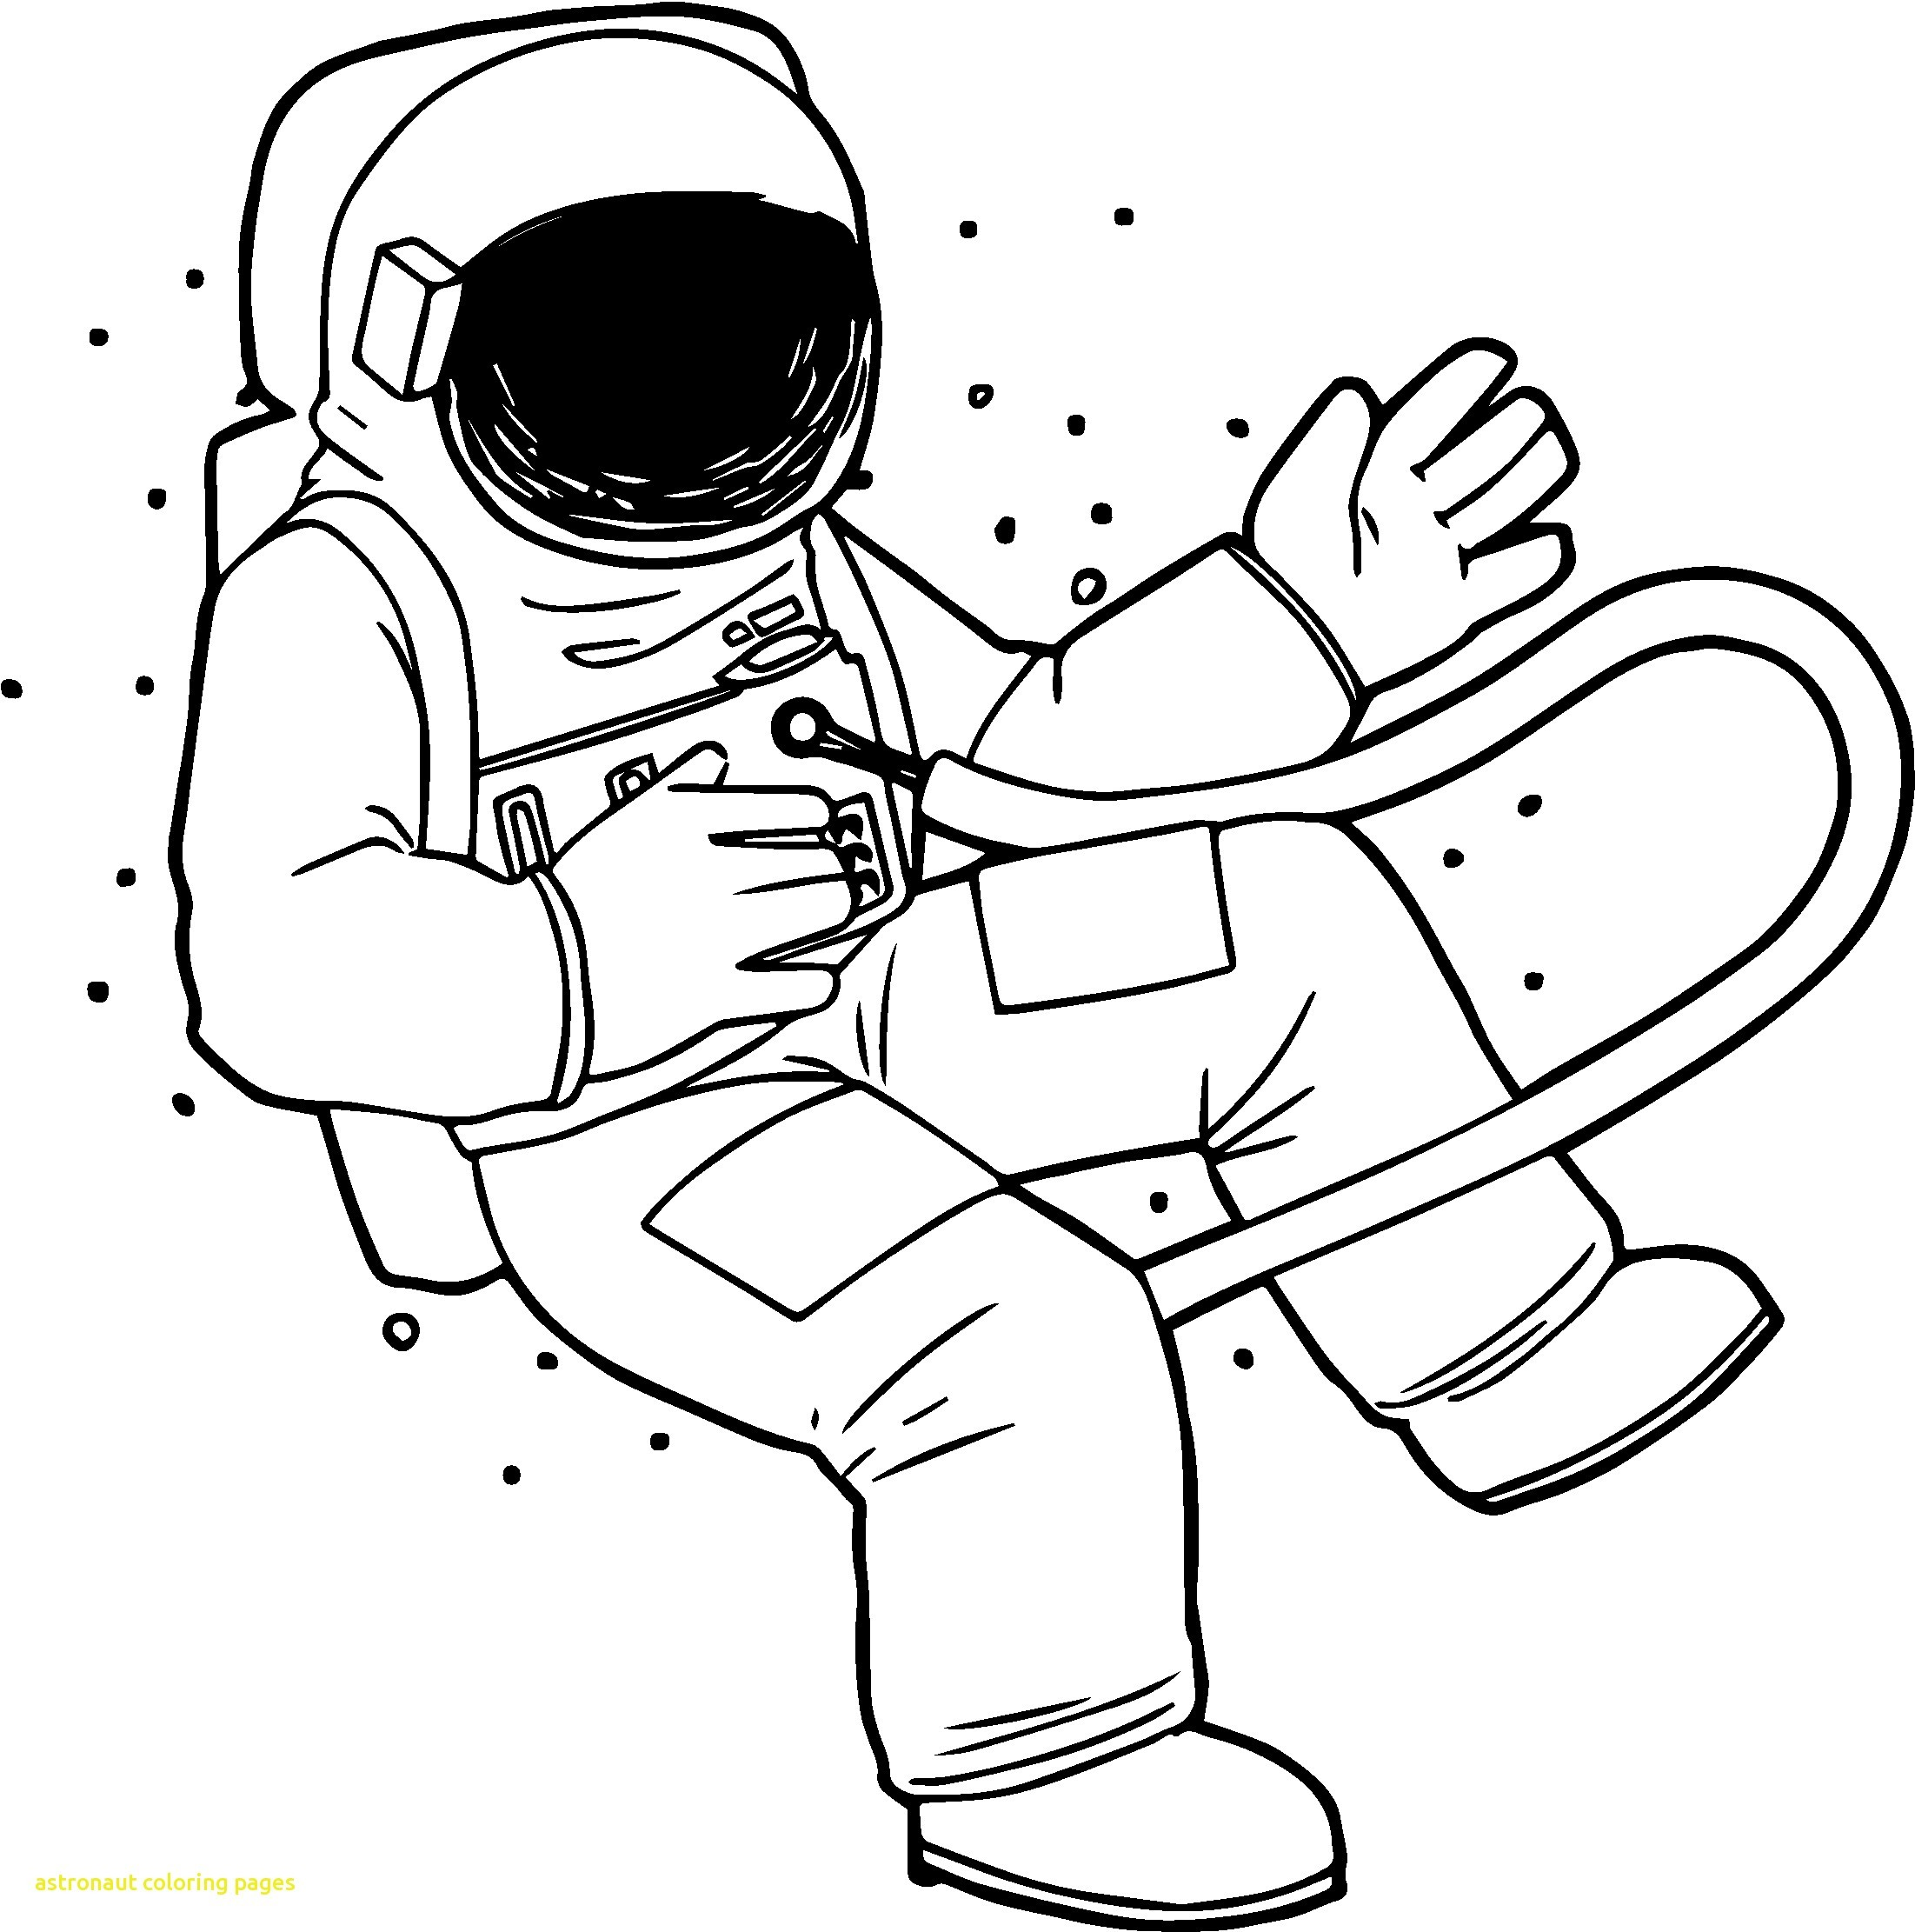 astronaut for coloring free printable astronaut in space pdf coloring page coloring for astronaut